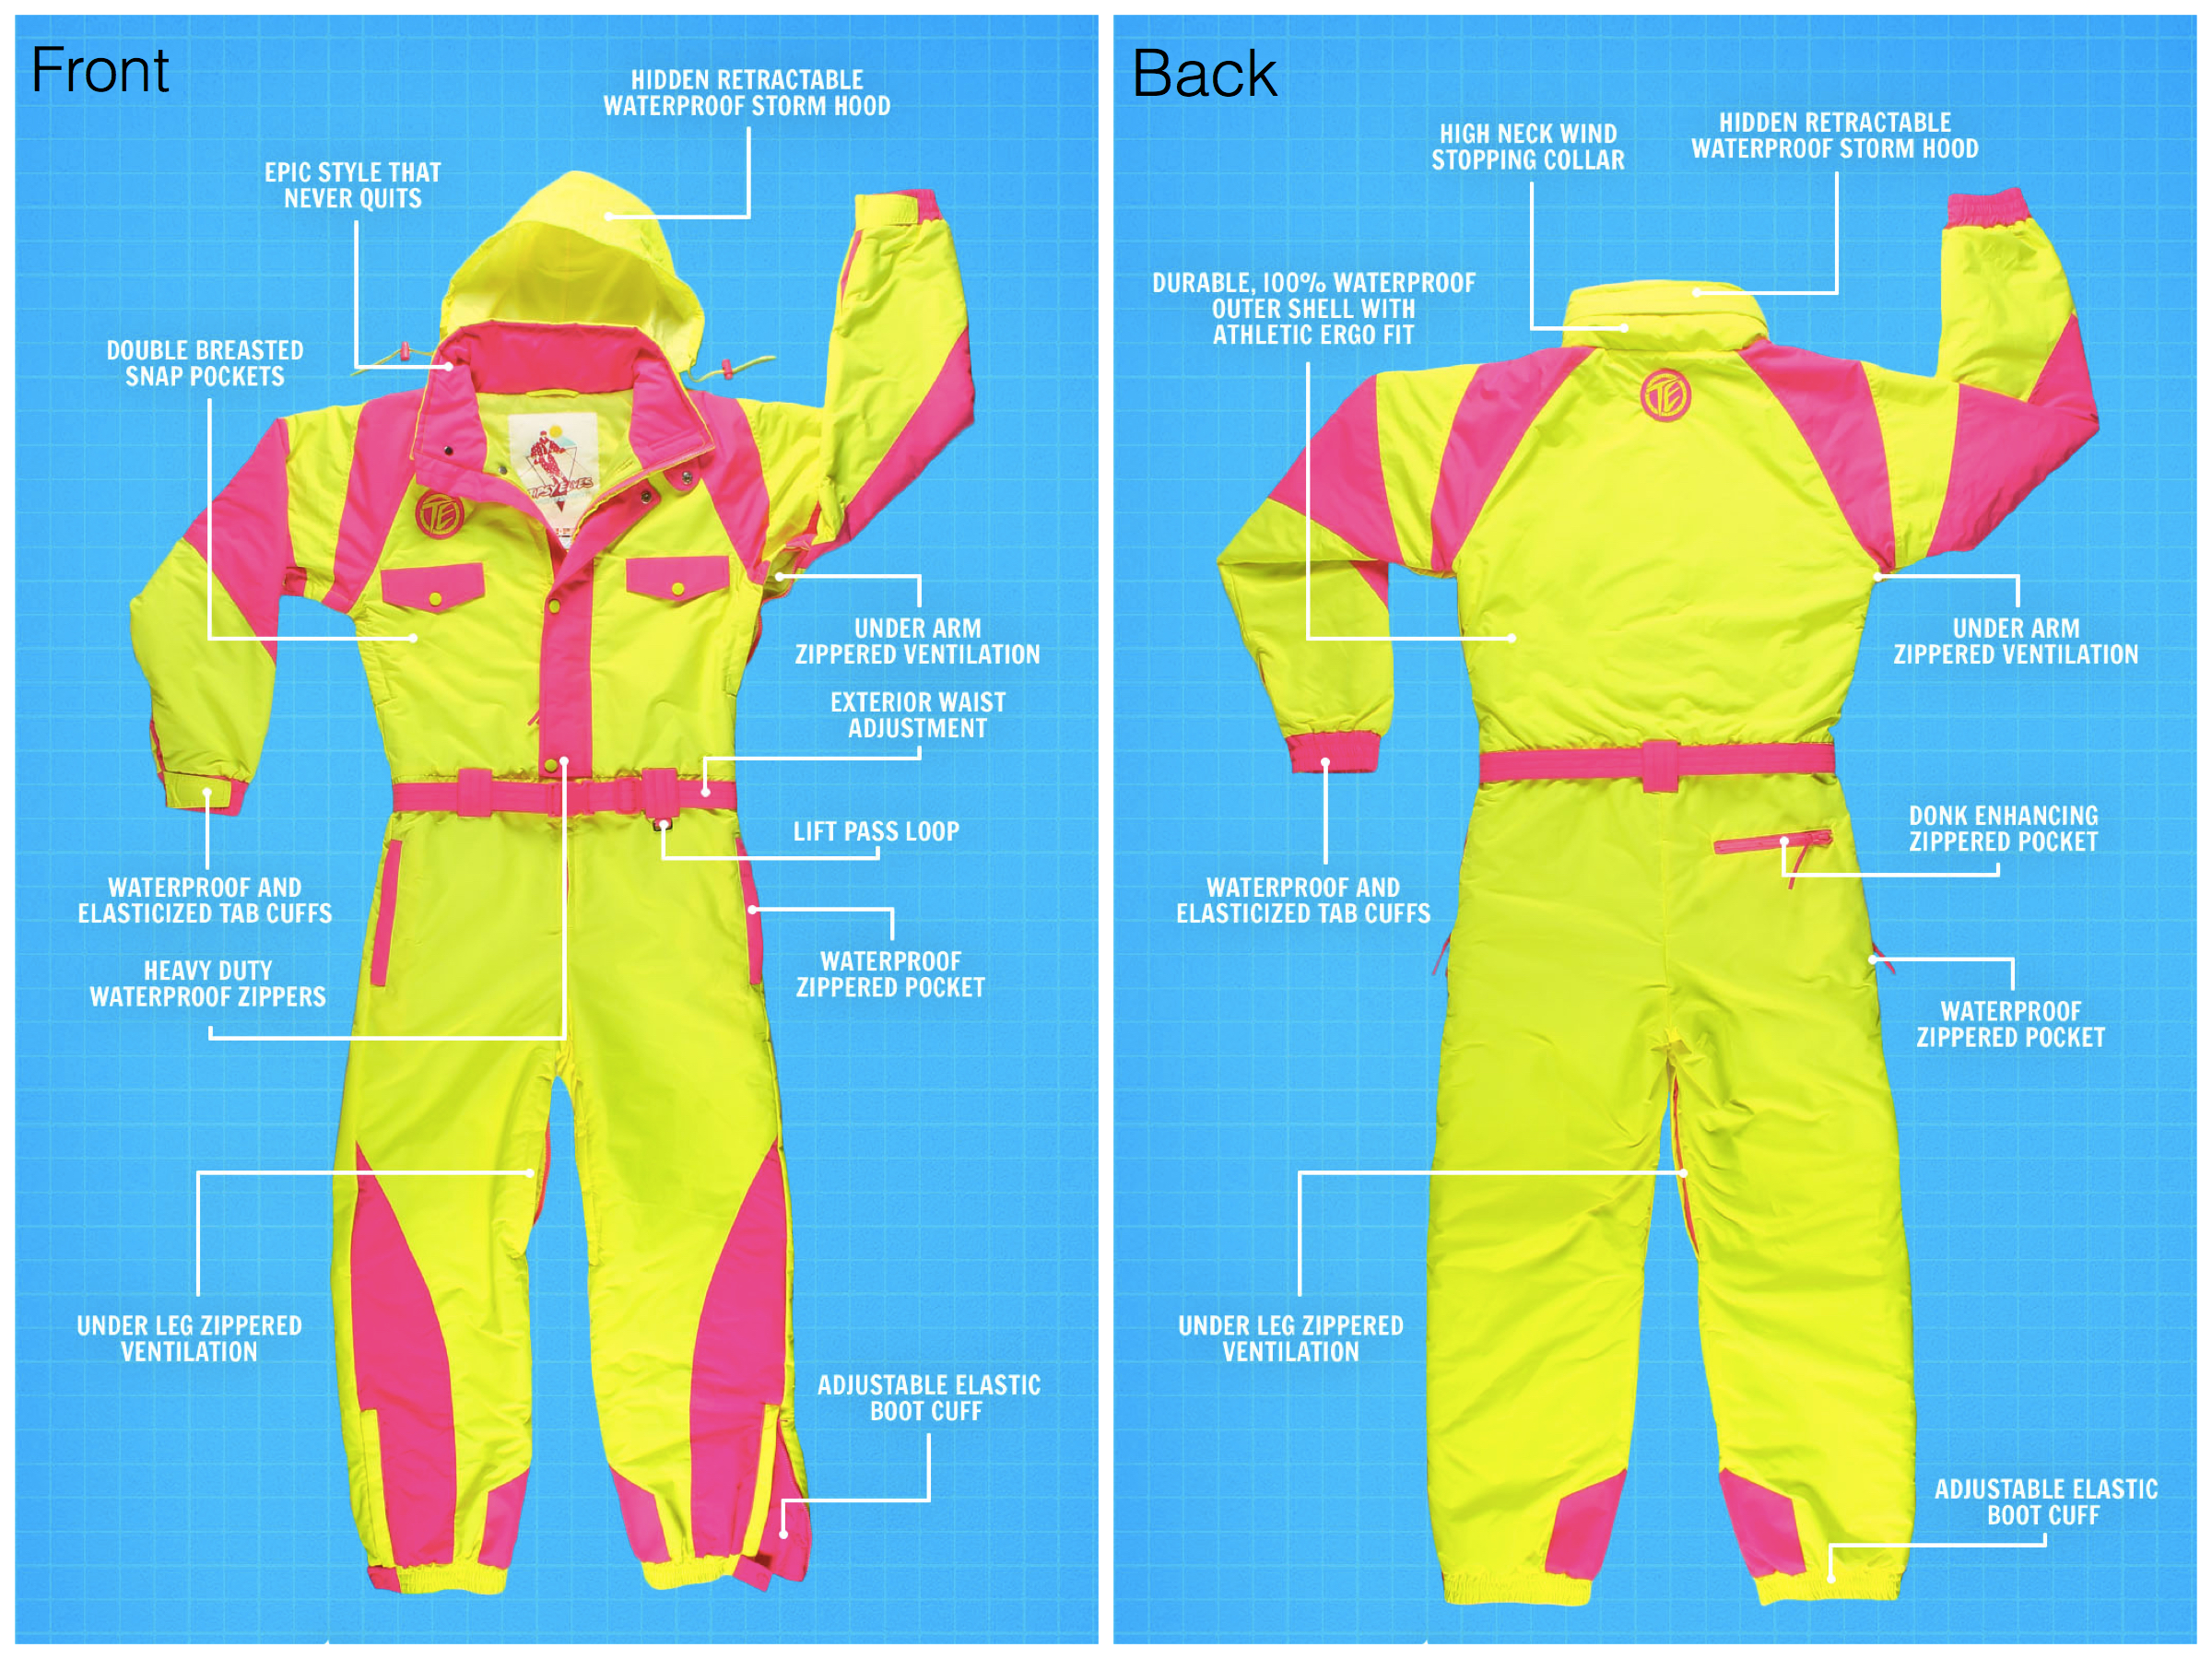 Tipsy Elves Ski Suit Features, Fun Premium Crafted Ski Suits